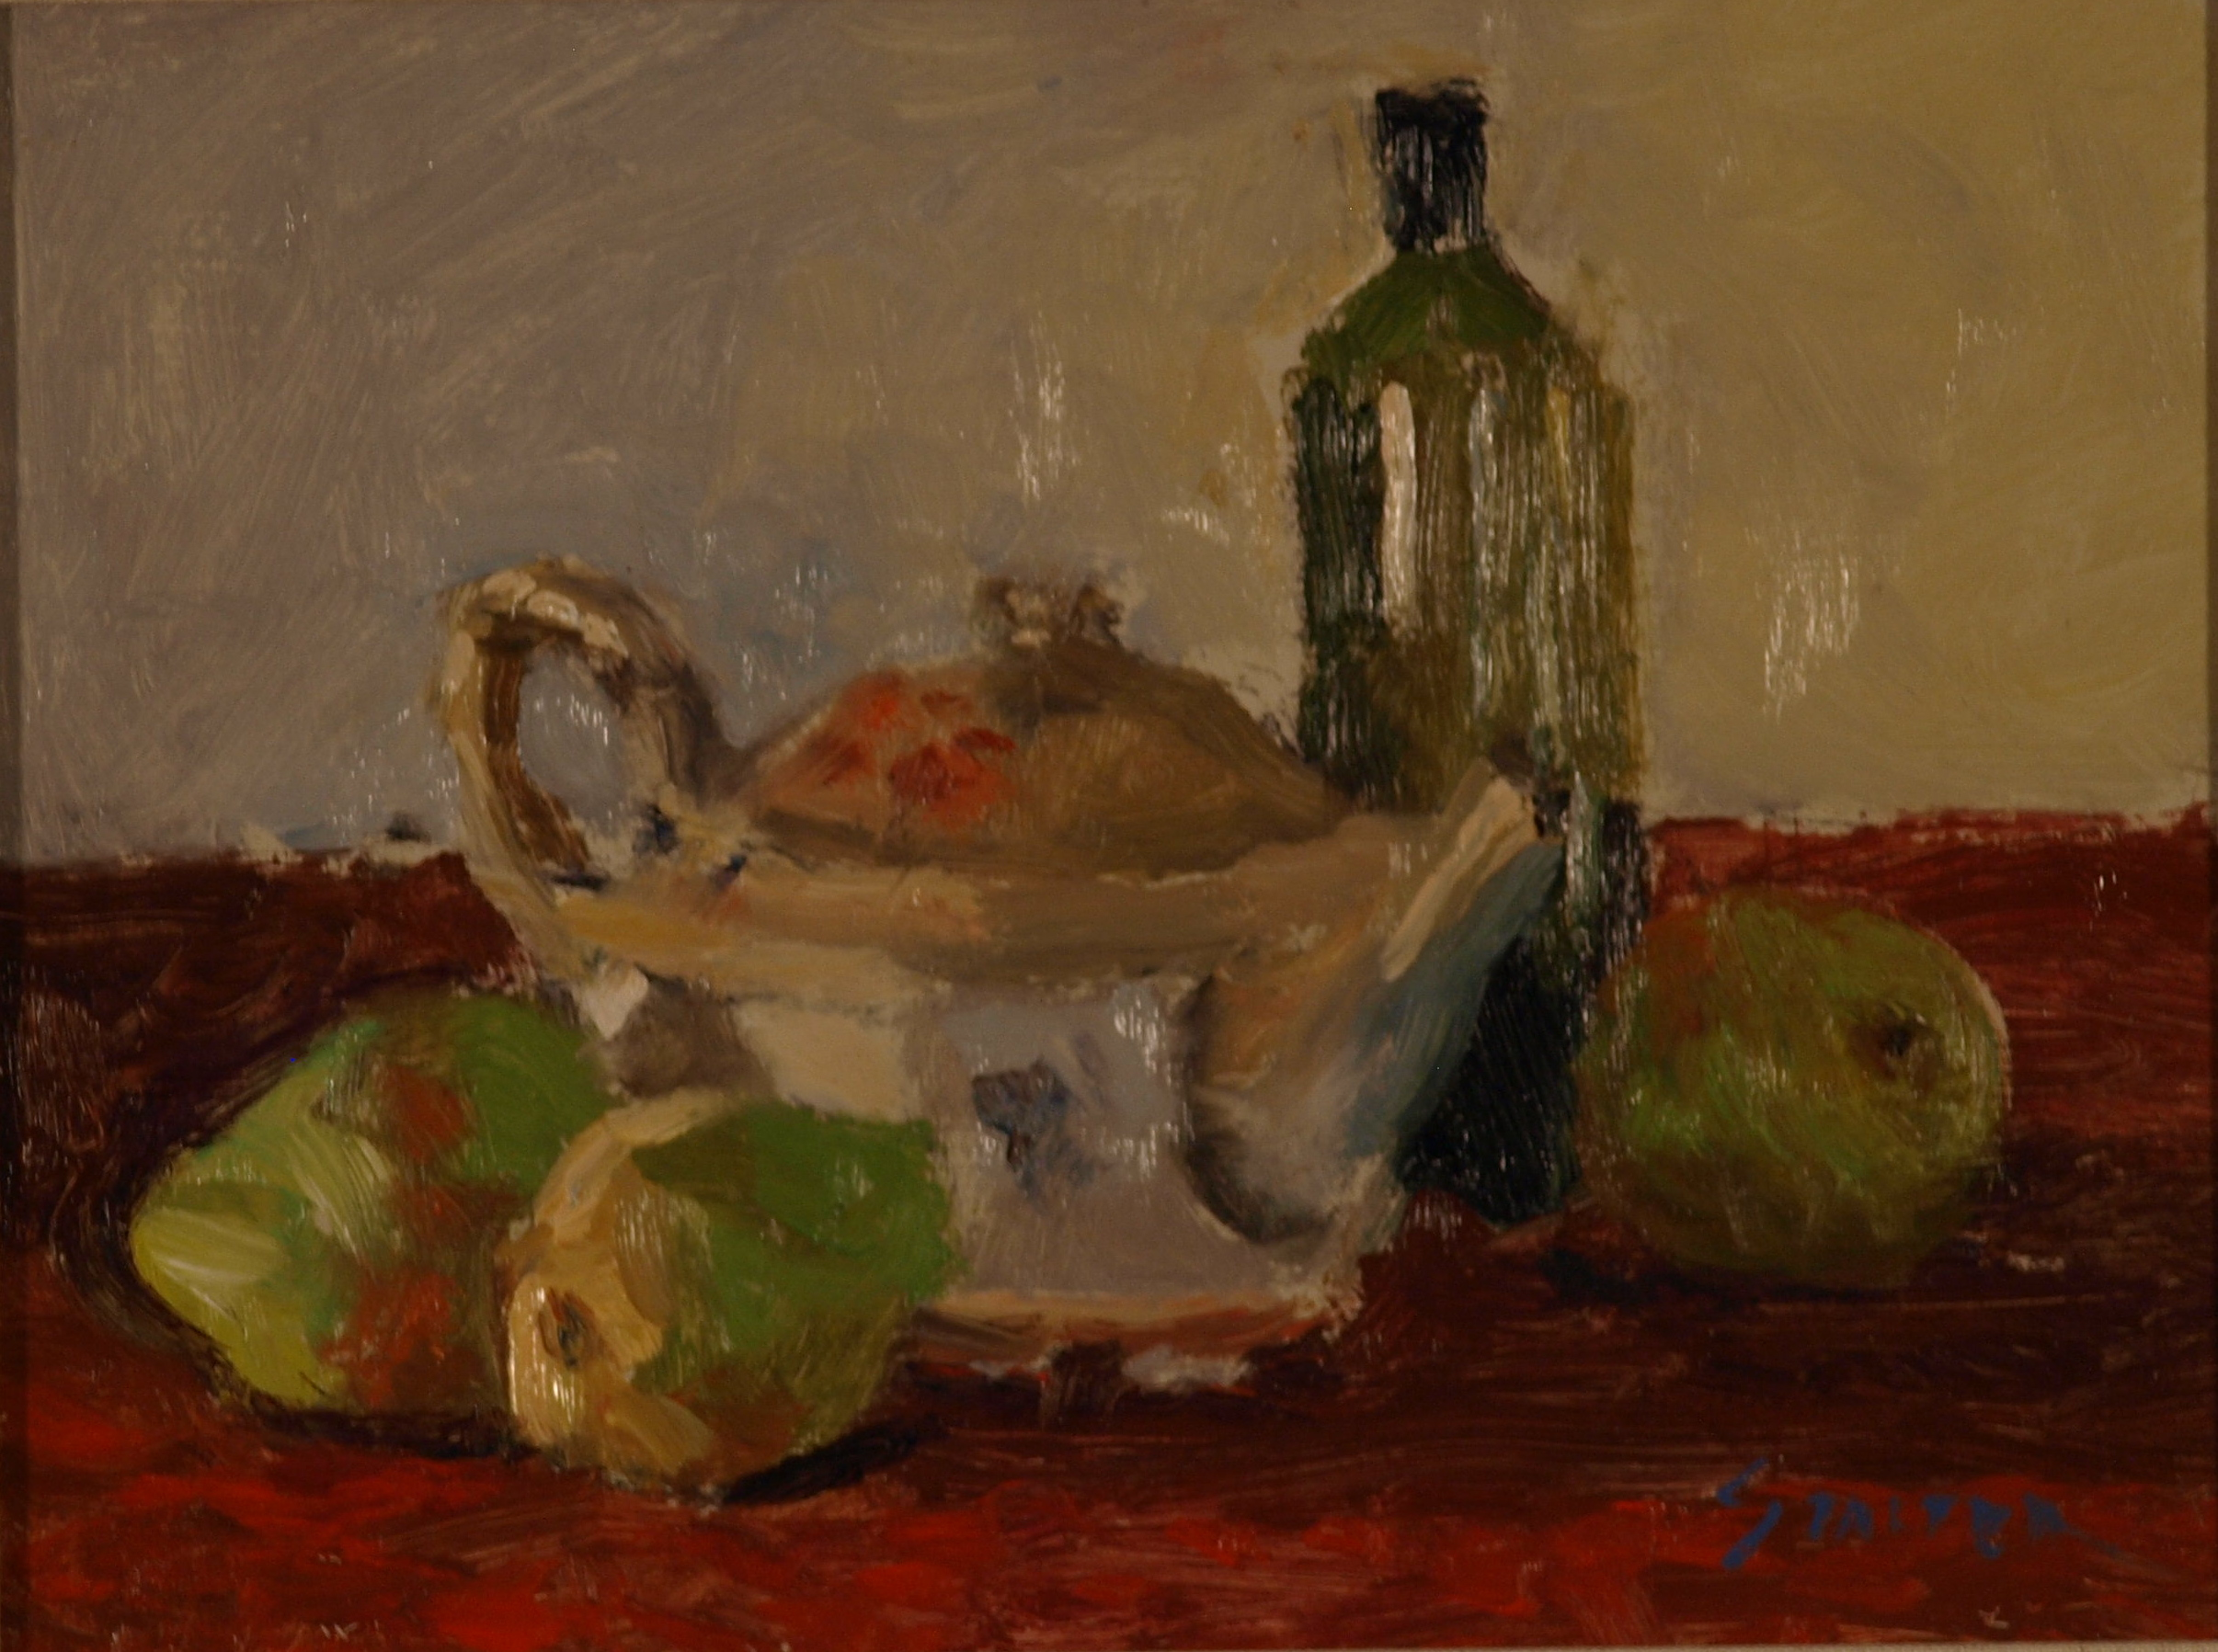 Still Life - Three Pairs, Oil on Canvas on Panel, 9 x 12 Inches, by Richard Stalter, $225